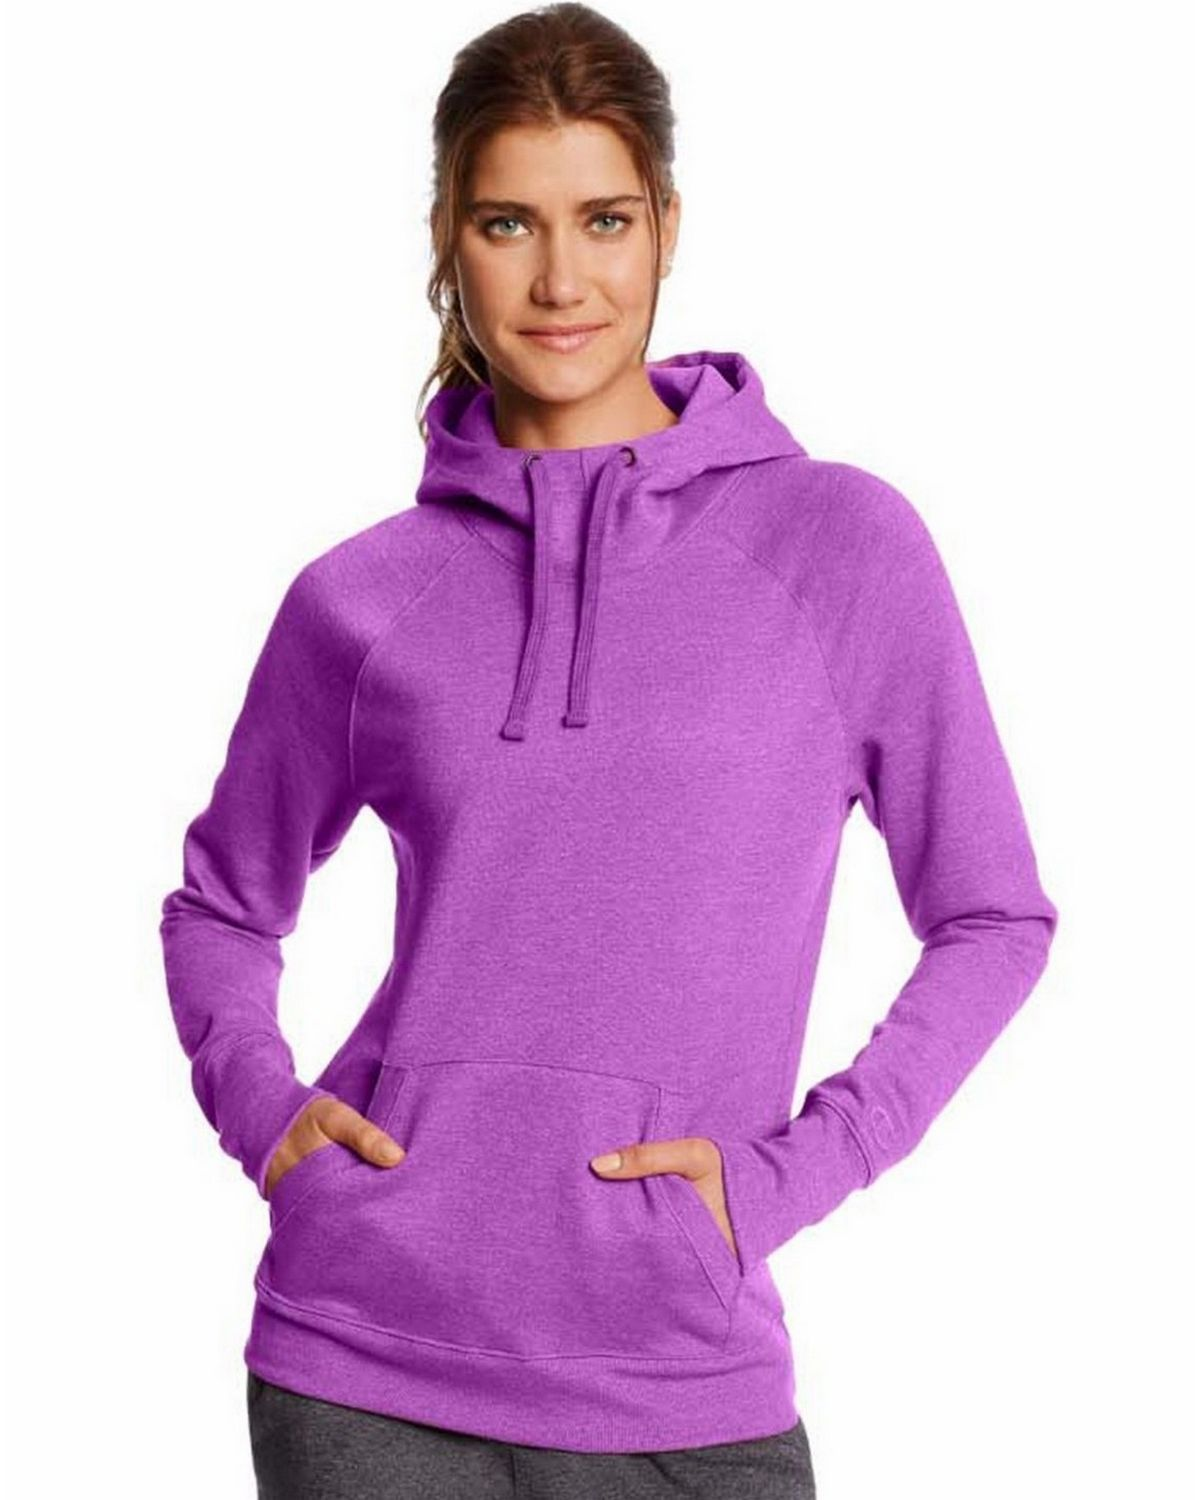 Champion W0934 Fleece Pullover Hoodie - Amethyst Glaze Heather - M W0934